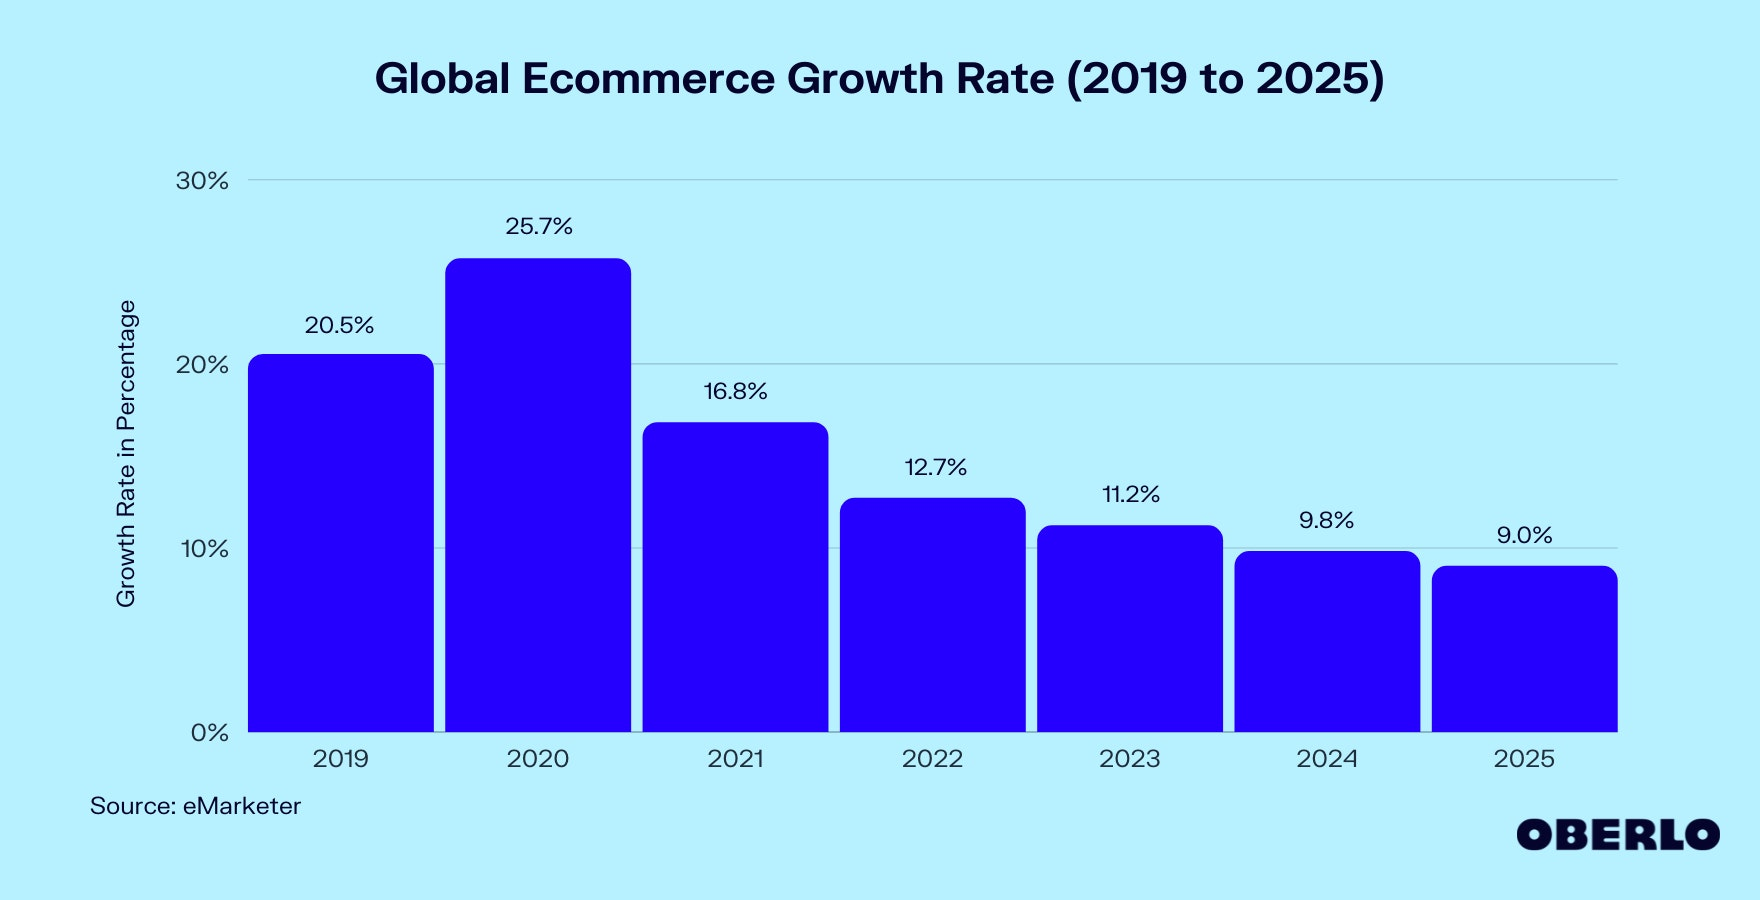 Chart of Global Ecommerce Growth Rate (2019 to 2025)